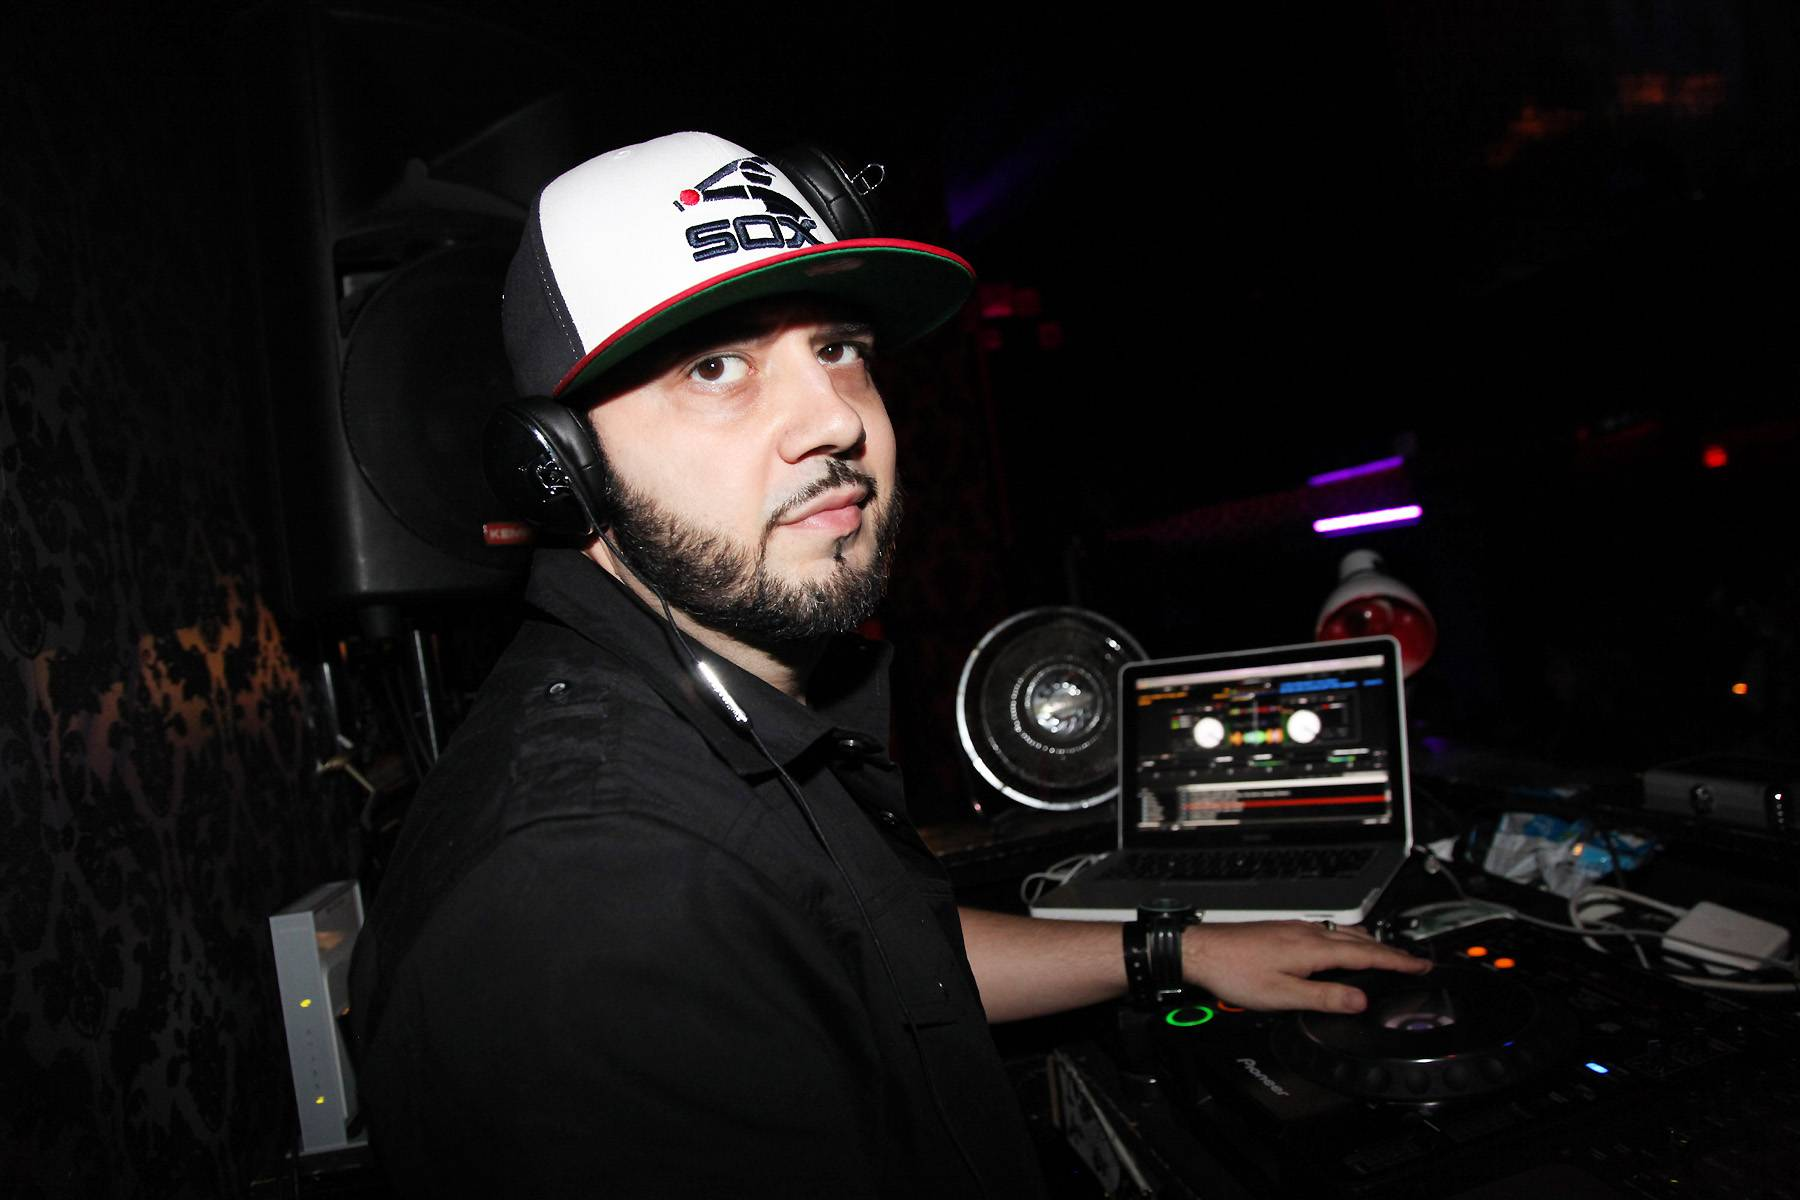 """33. DJ Green Lantern - New York's """"Evil Genius"""" was a force in the mixtape game around the turn of the century, and eventually was handpicked by Eminem to be Shady Records' official DJ in 2002. He's also made a huge mark as a producer, crafting Ludacris' smash """"Number One Spot"""" and grimy classics by Jadakiss, Immortal Technique and others. (Photo: Johnny Nunez/WireImage)"""